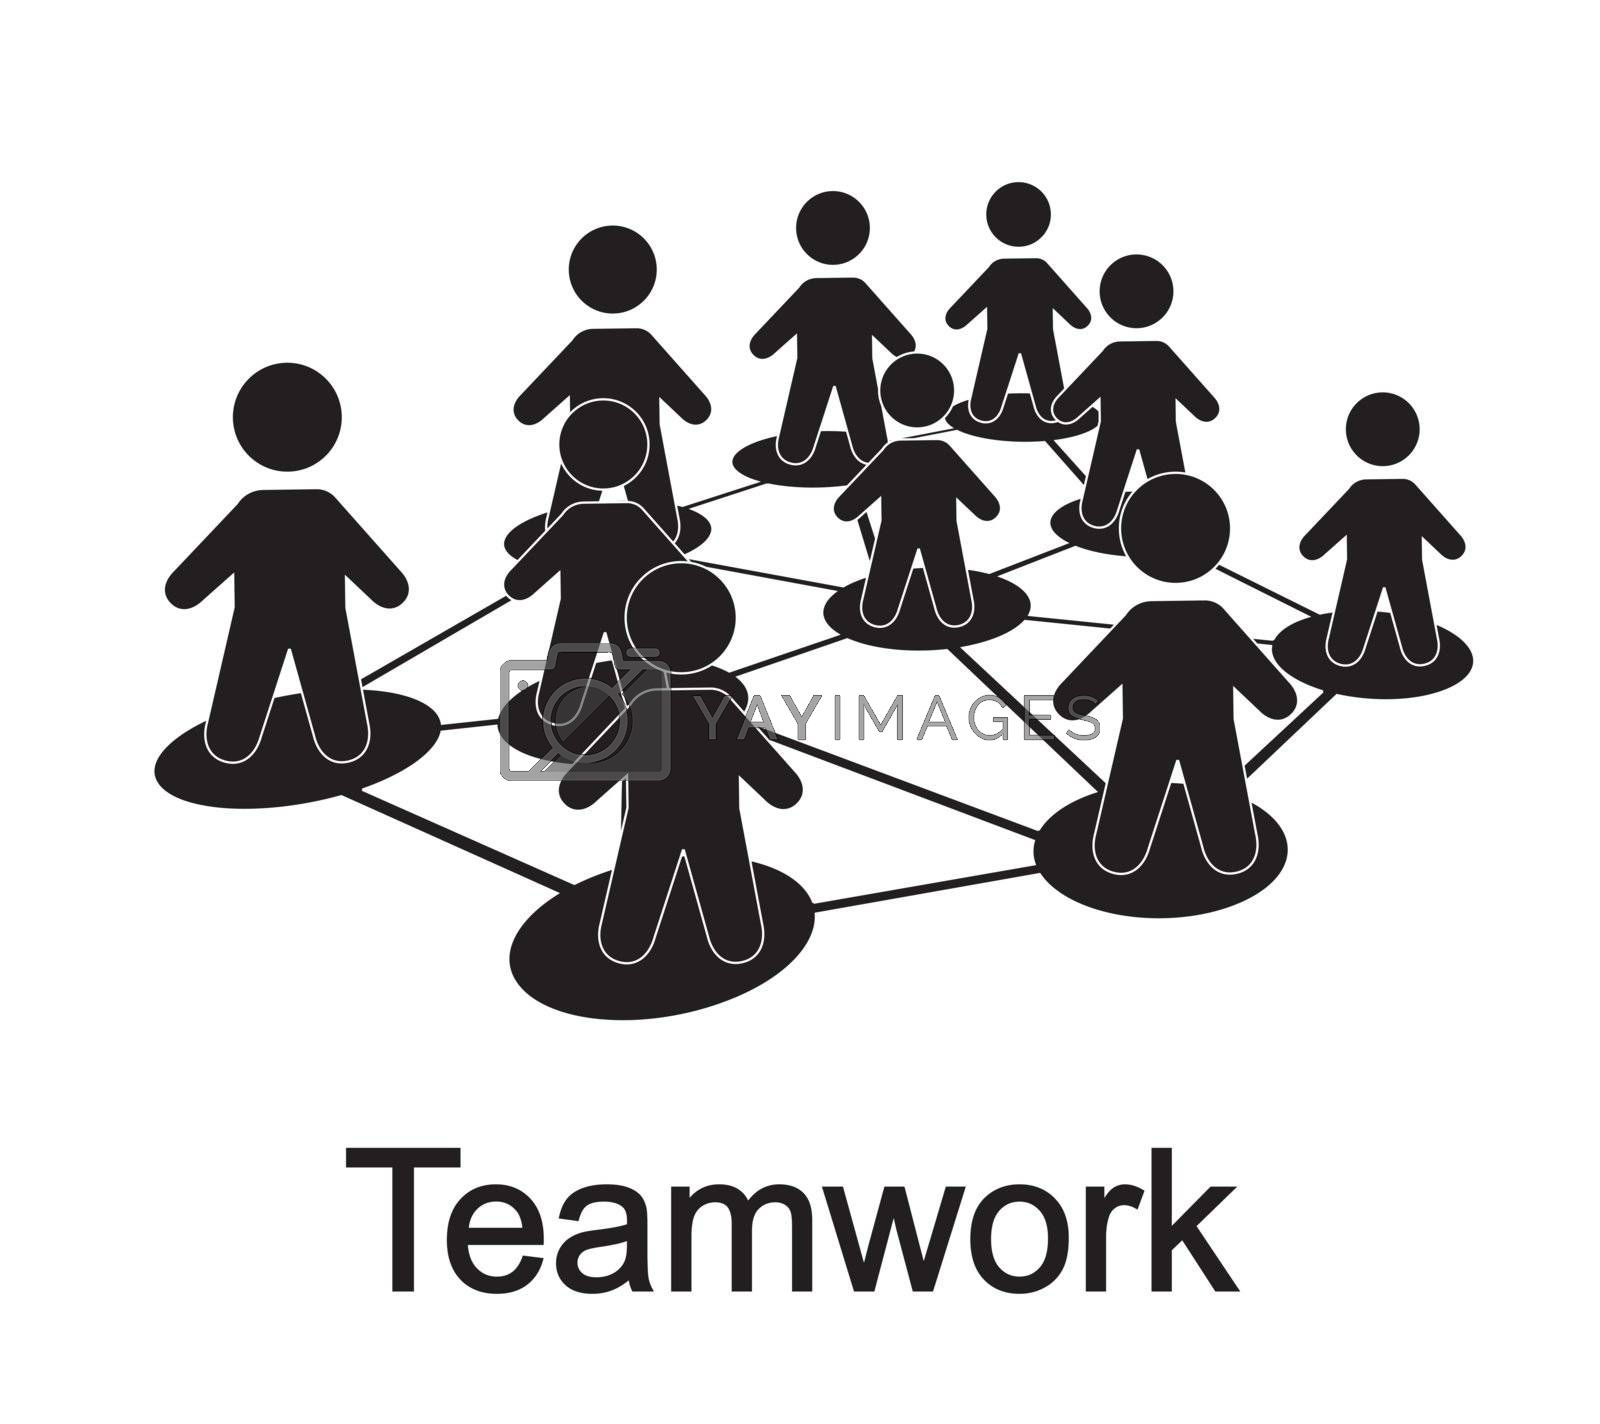 men forming a teamwork over white background